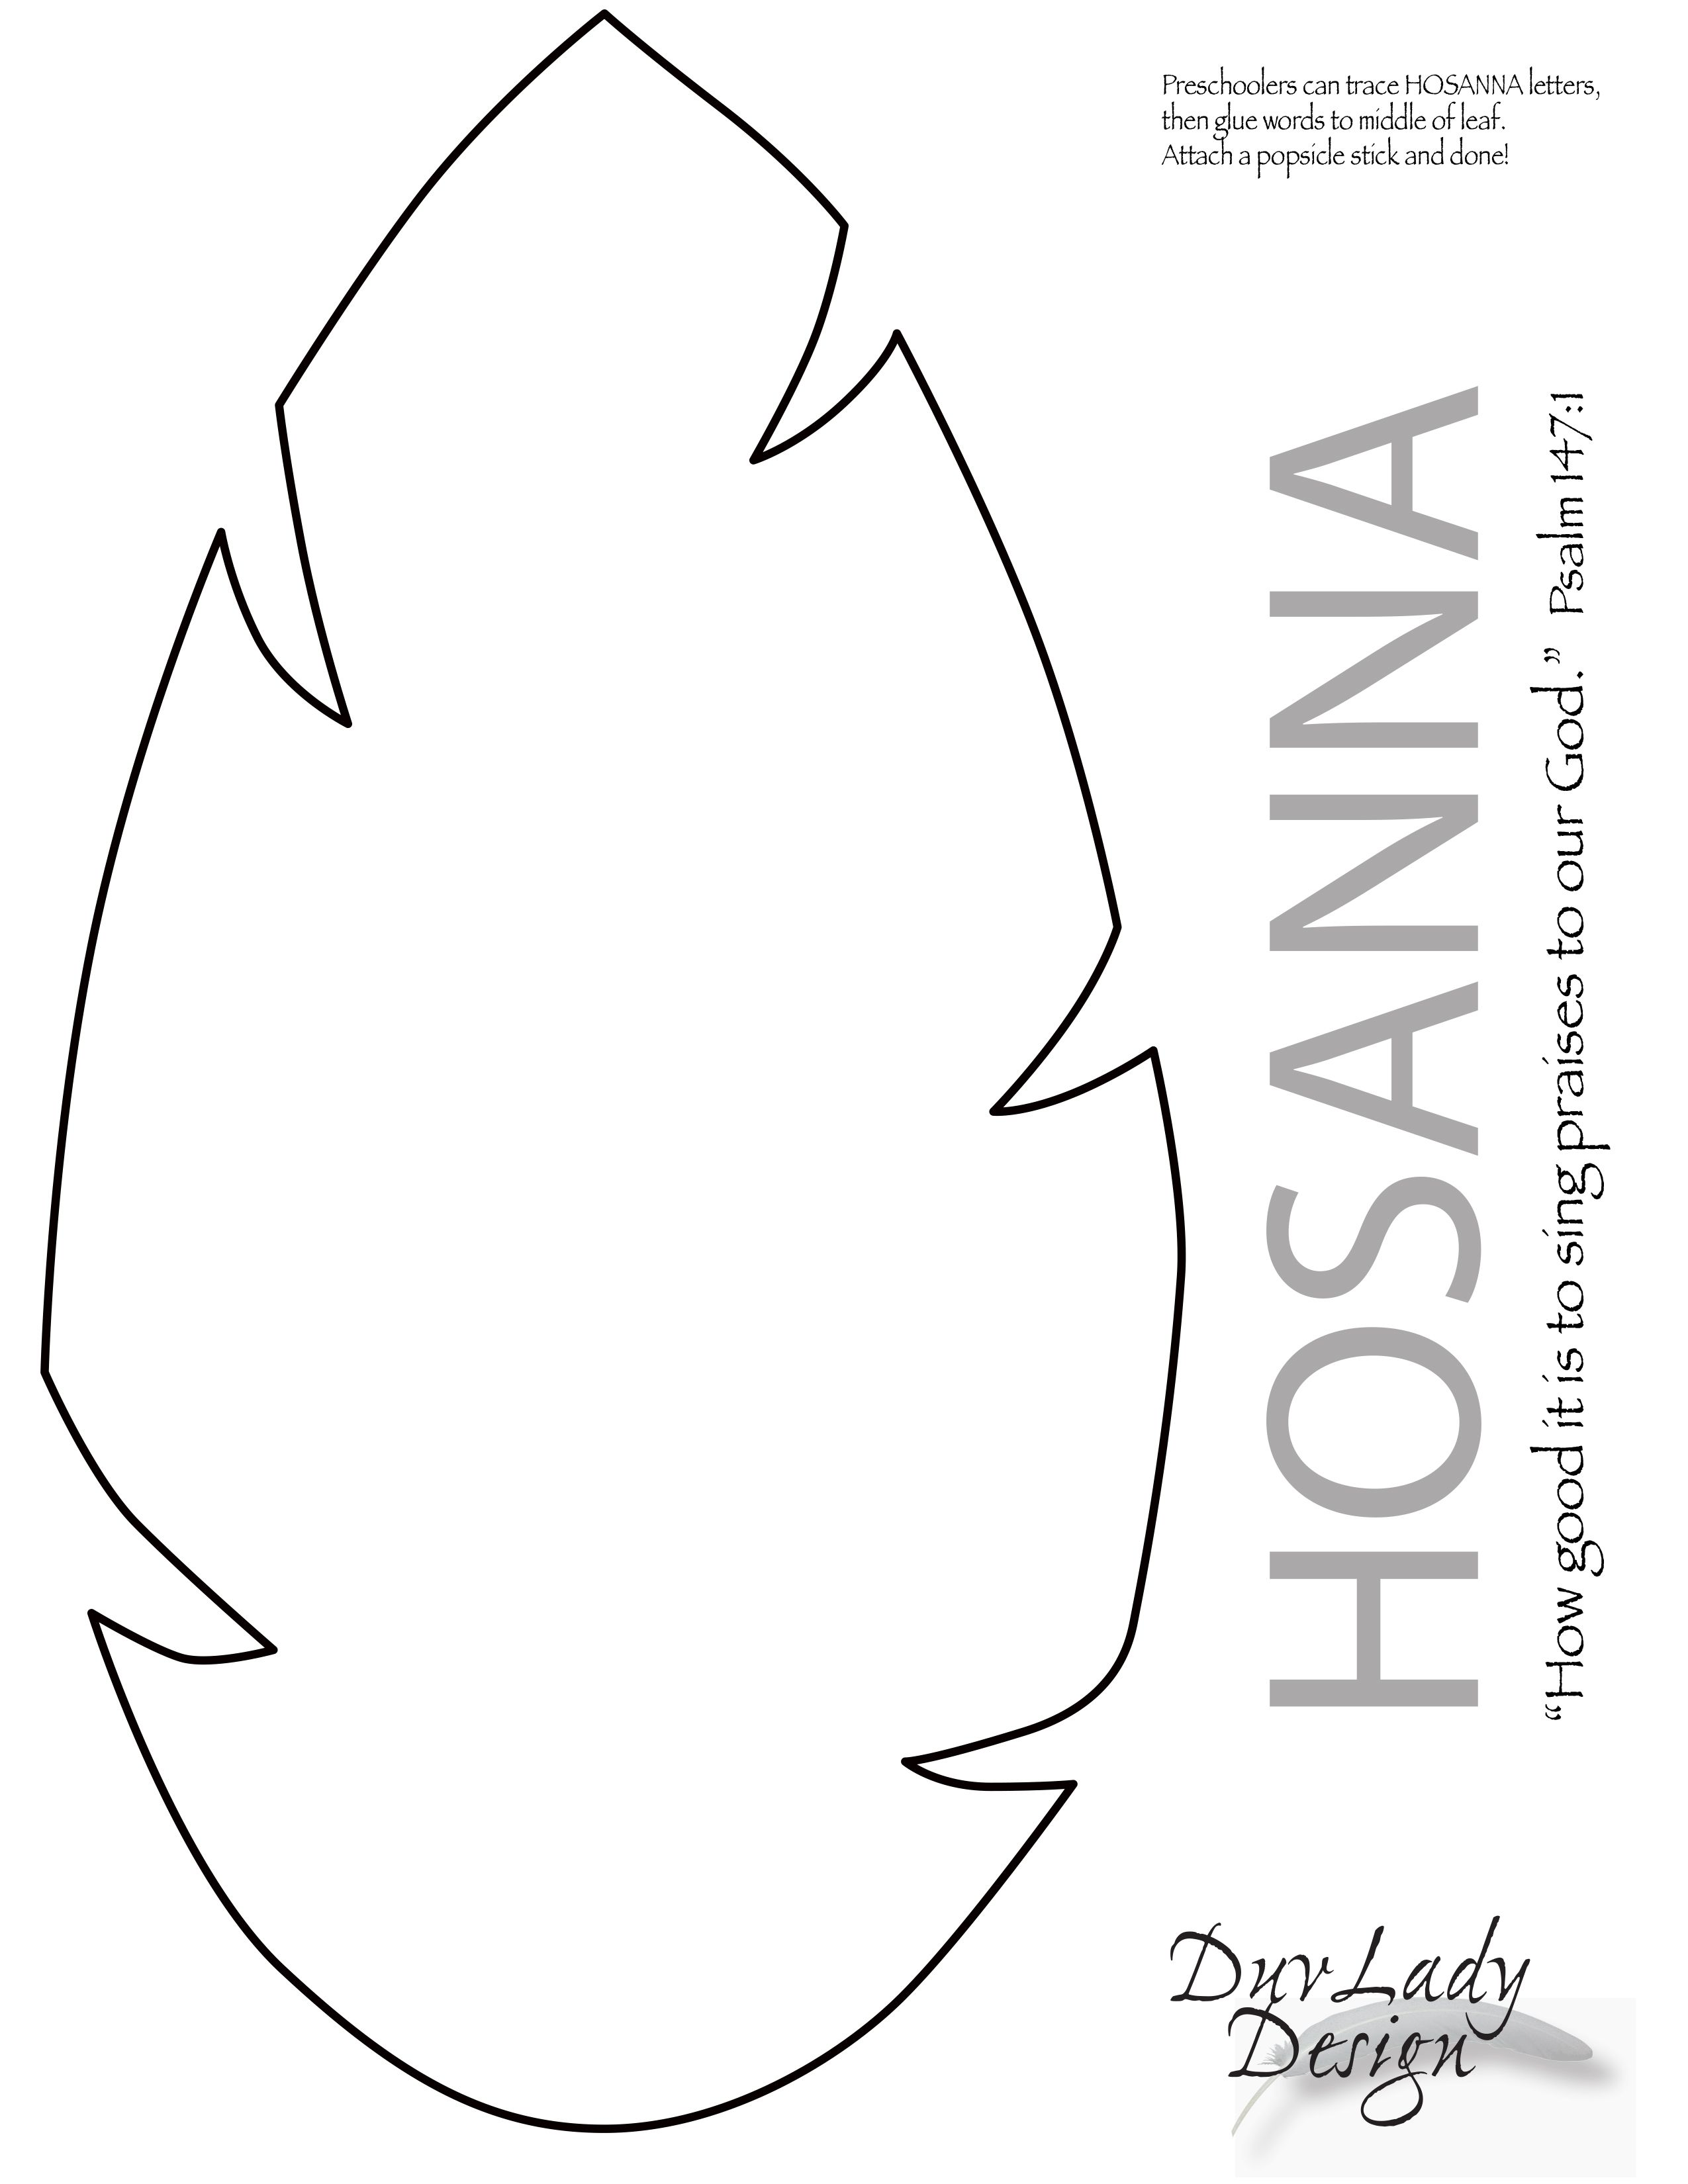 Easter Hosanna Leaf for children template. Attach to popsicle stick. Print  out on green